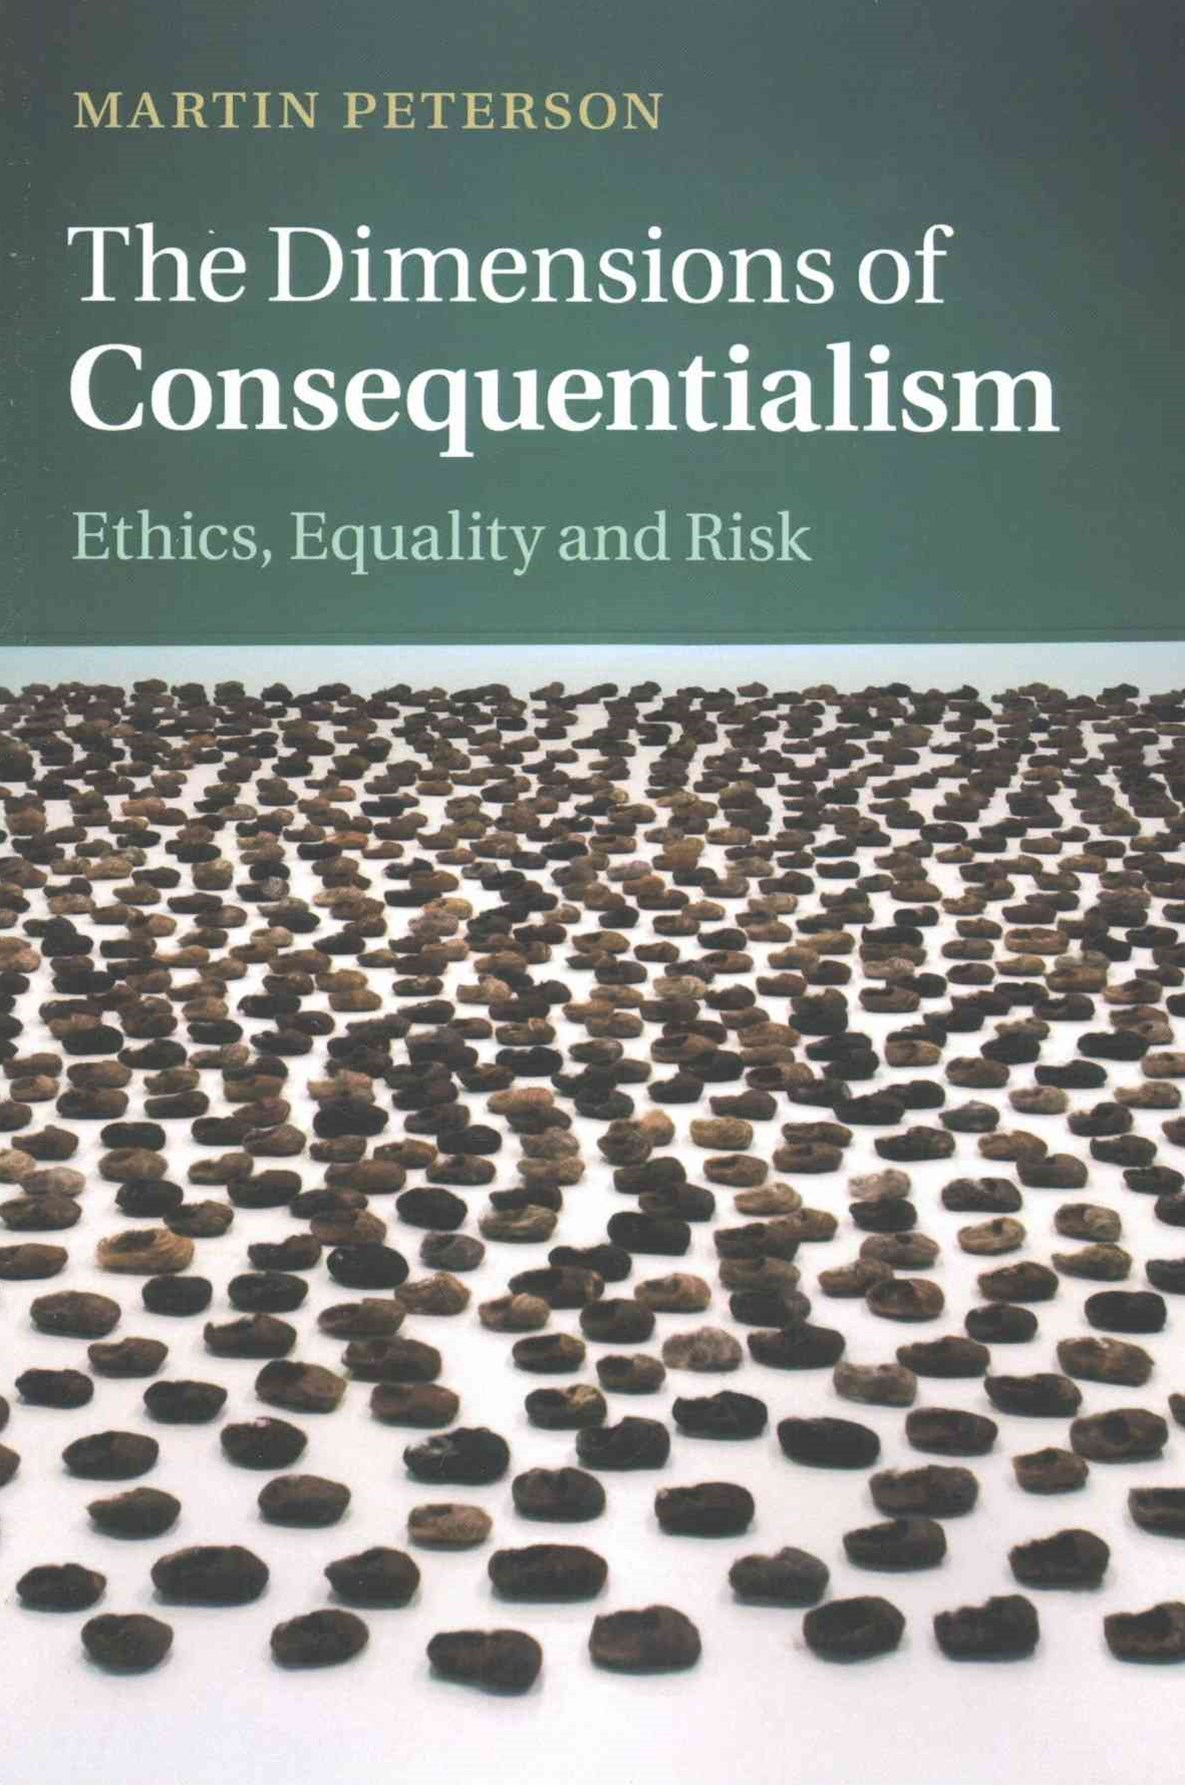 The Dimensions of Consequentialism